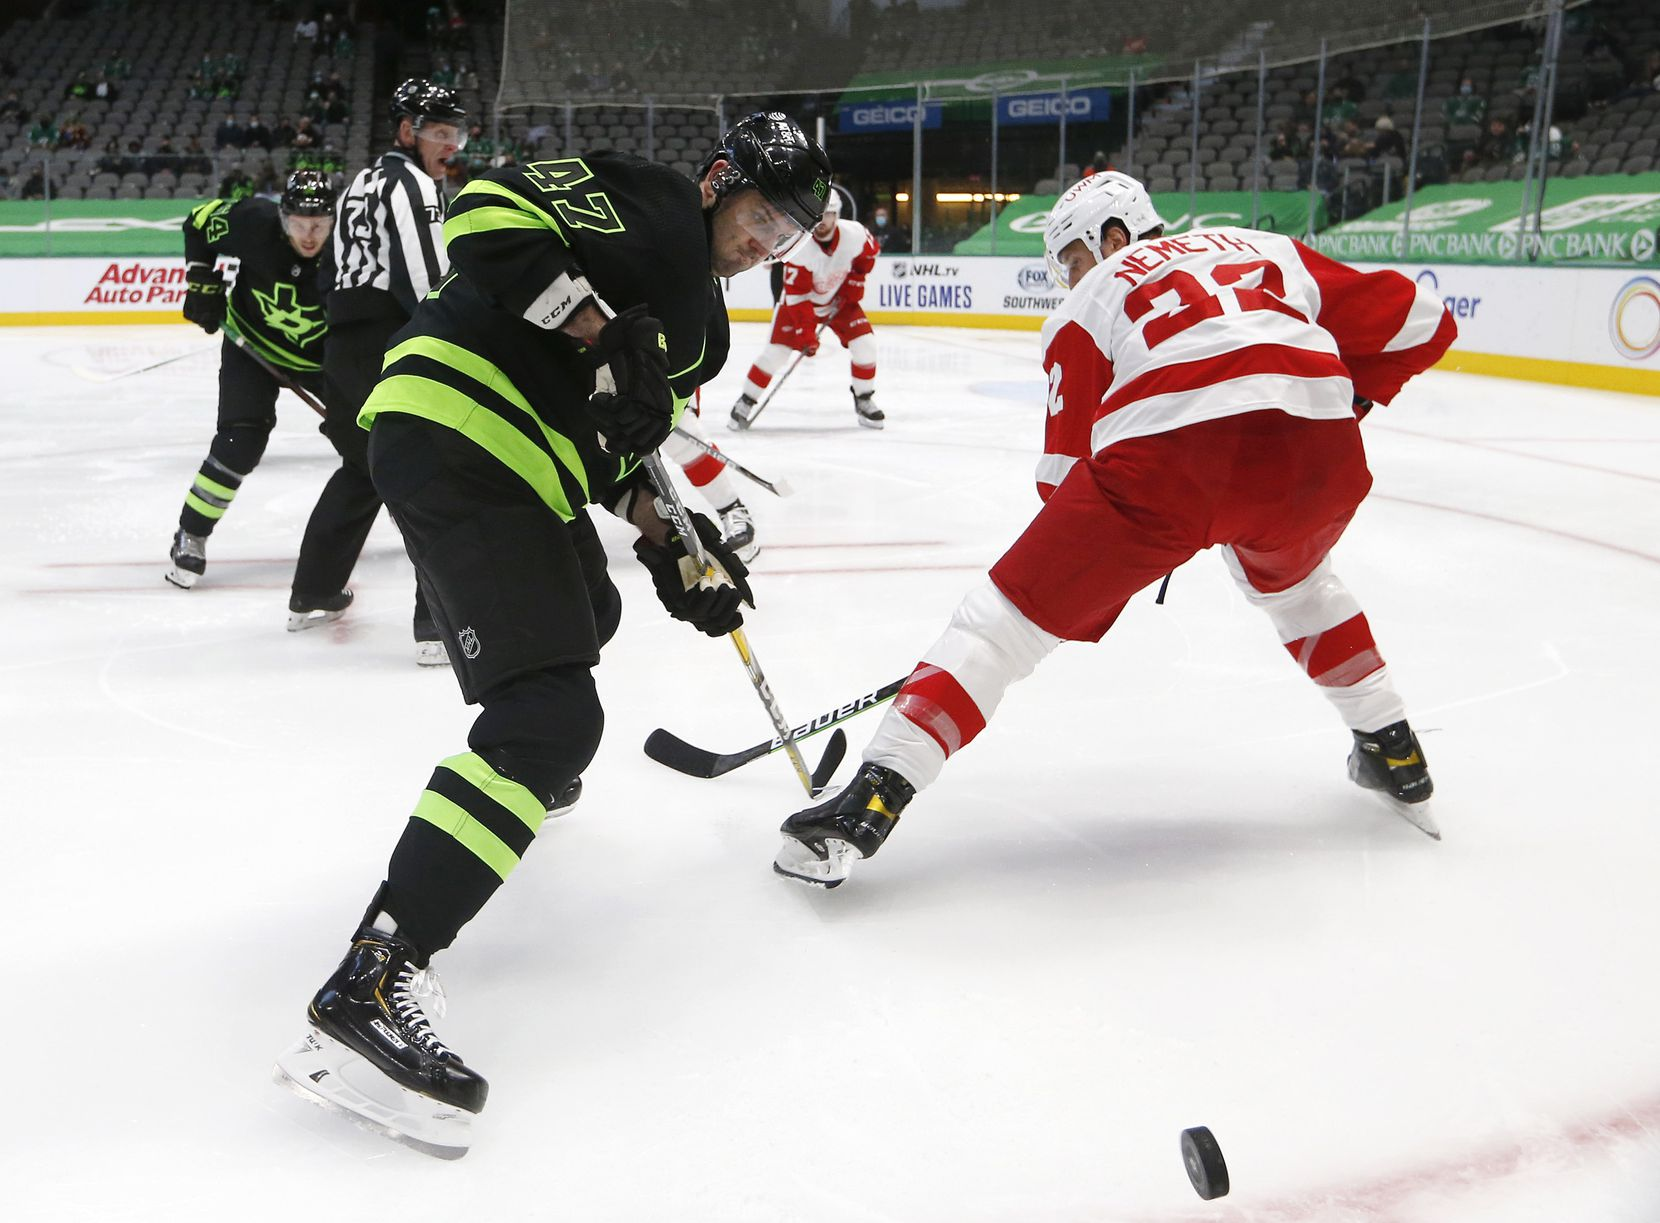 Dallas Stars right wing Alexander Radulov (47) rushes toward the puck as Detroit Red Wings defenseman Patrik Nemeth (22) looks back during the first period of play at American Airlines Center on Thursday, January 28, 2021in Dallas. (Vernon Bryant/The Dallas Morning News)